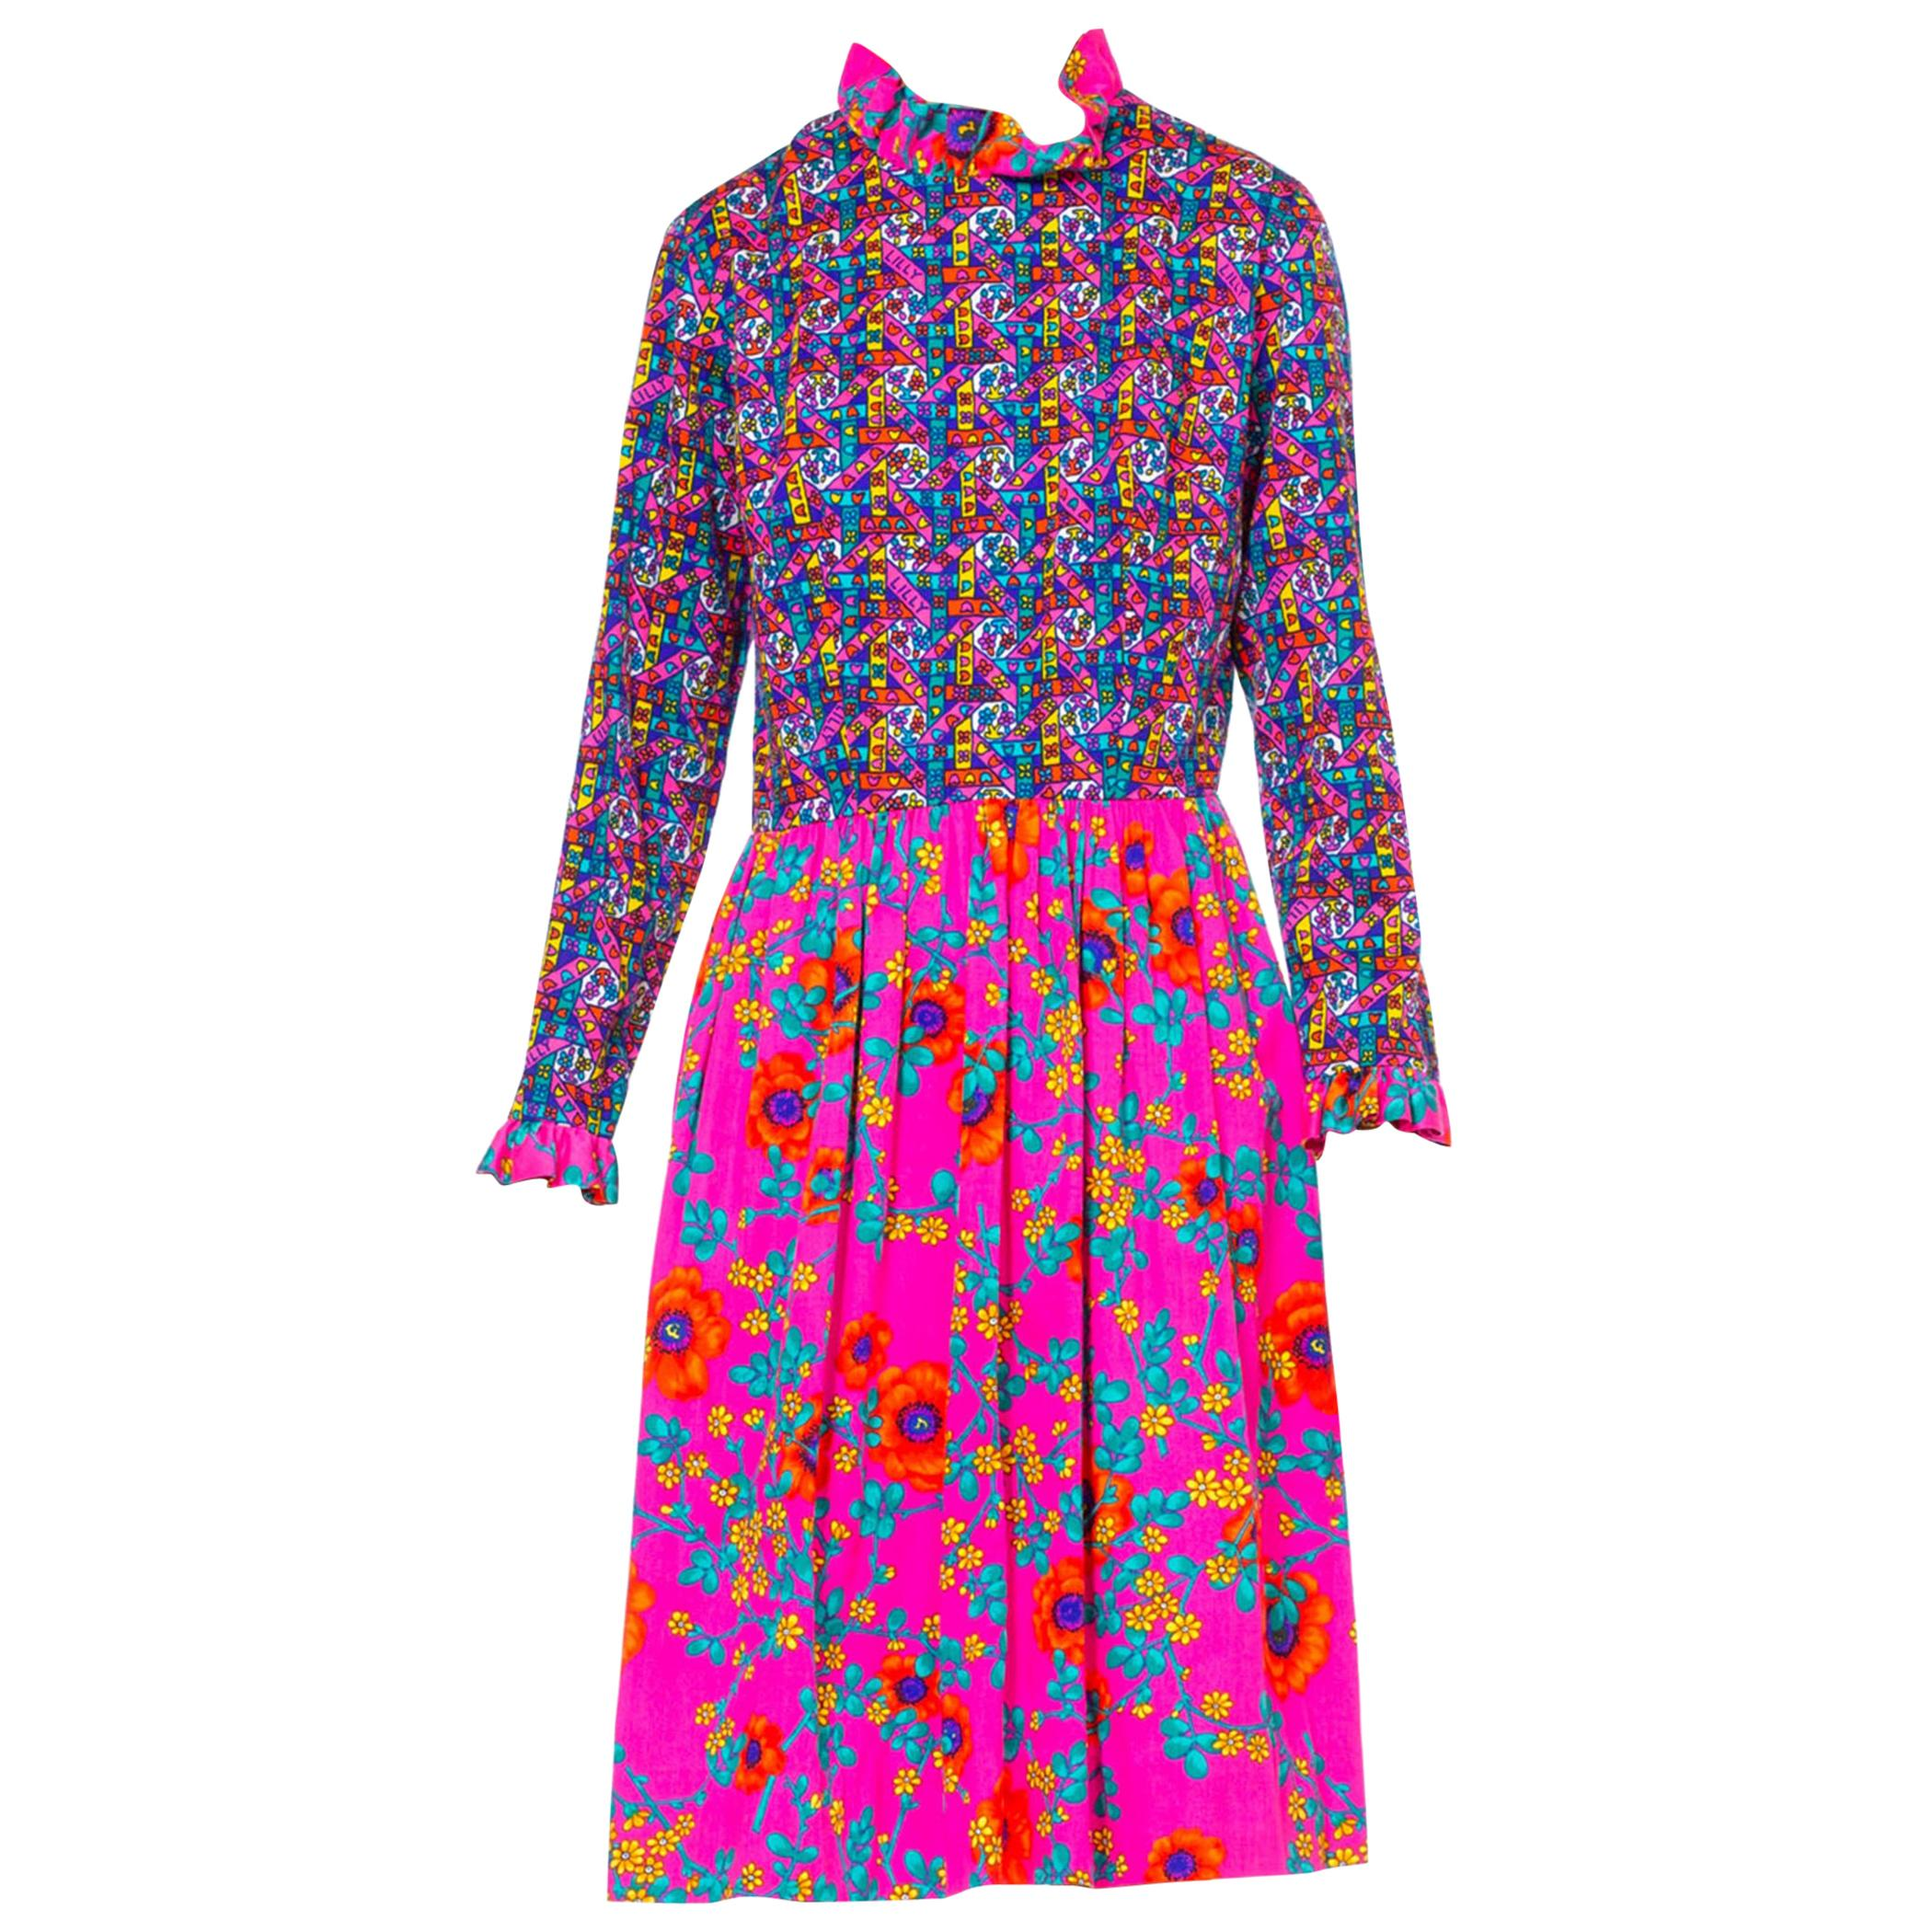 1960'S LILLY PULITZER Hot Pink Floral Cotton Long Sleeve Mod Dress With Ruffle